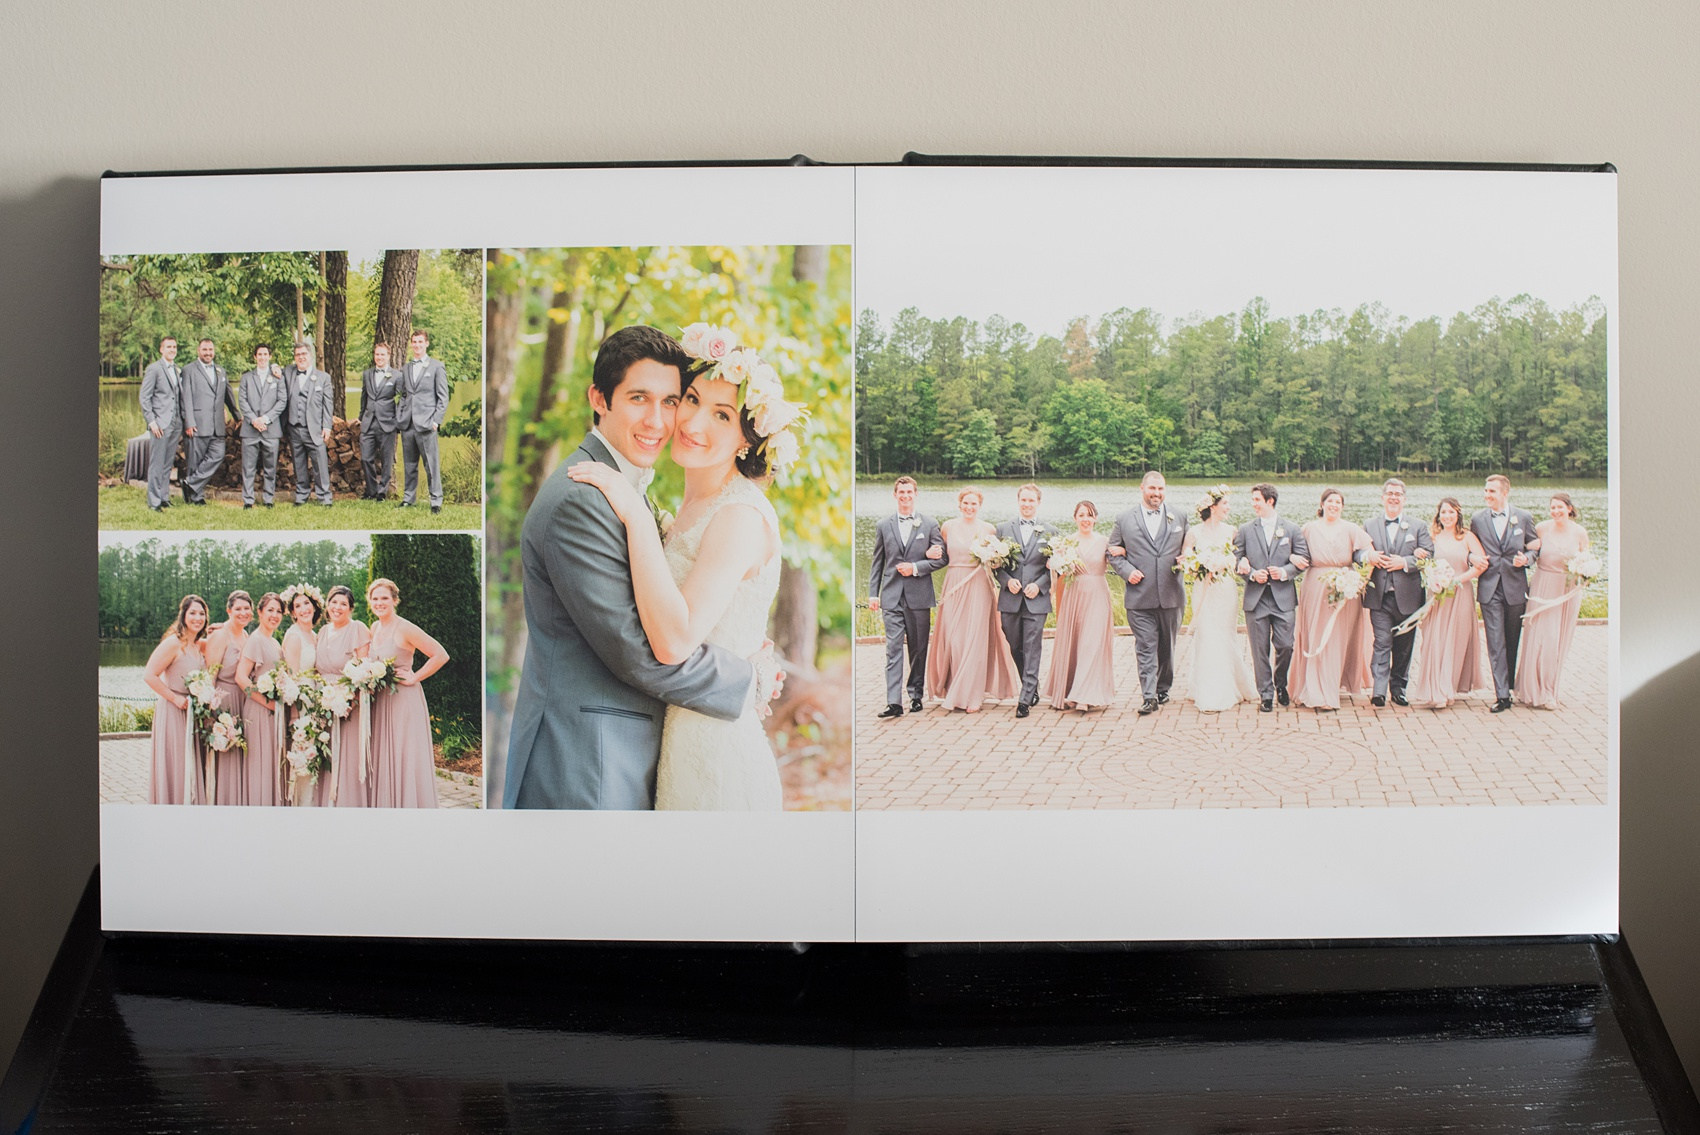 Images of a black calf leather fine art wedding album from Mikkel Paige Photography, a Raleigh, NC photographer. Photo shows a beautiful layout of the bride, groom and wedding party at The Pavilion at Angus Barn.